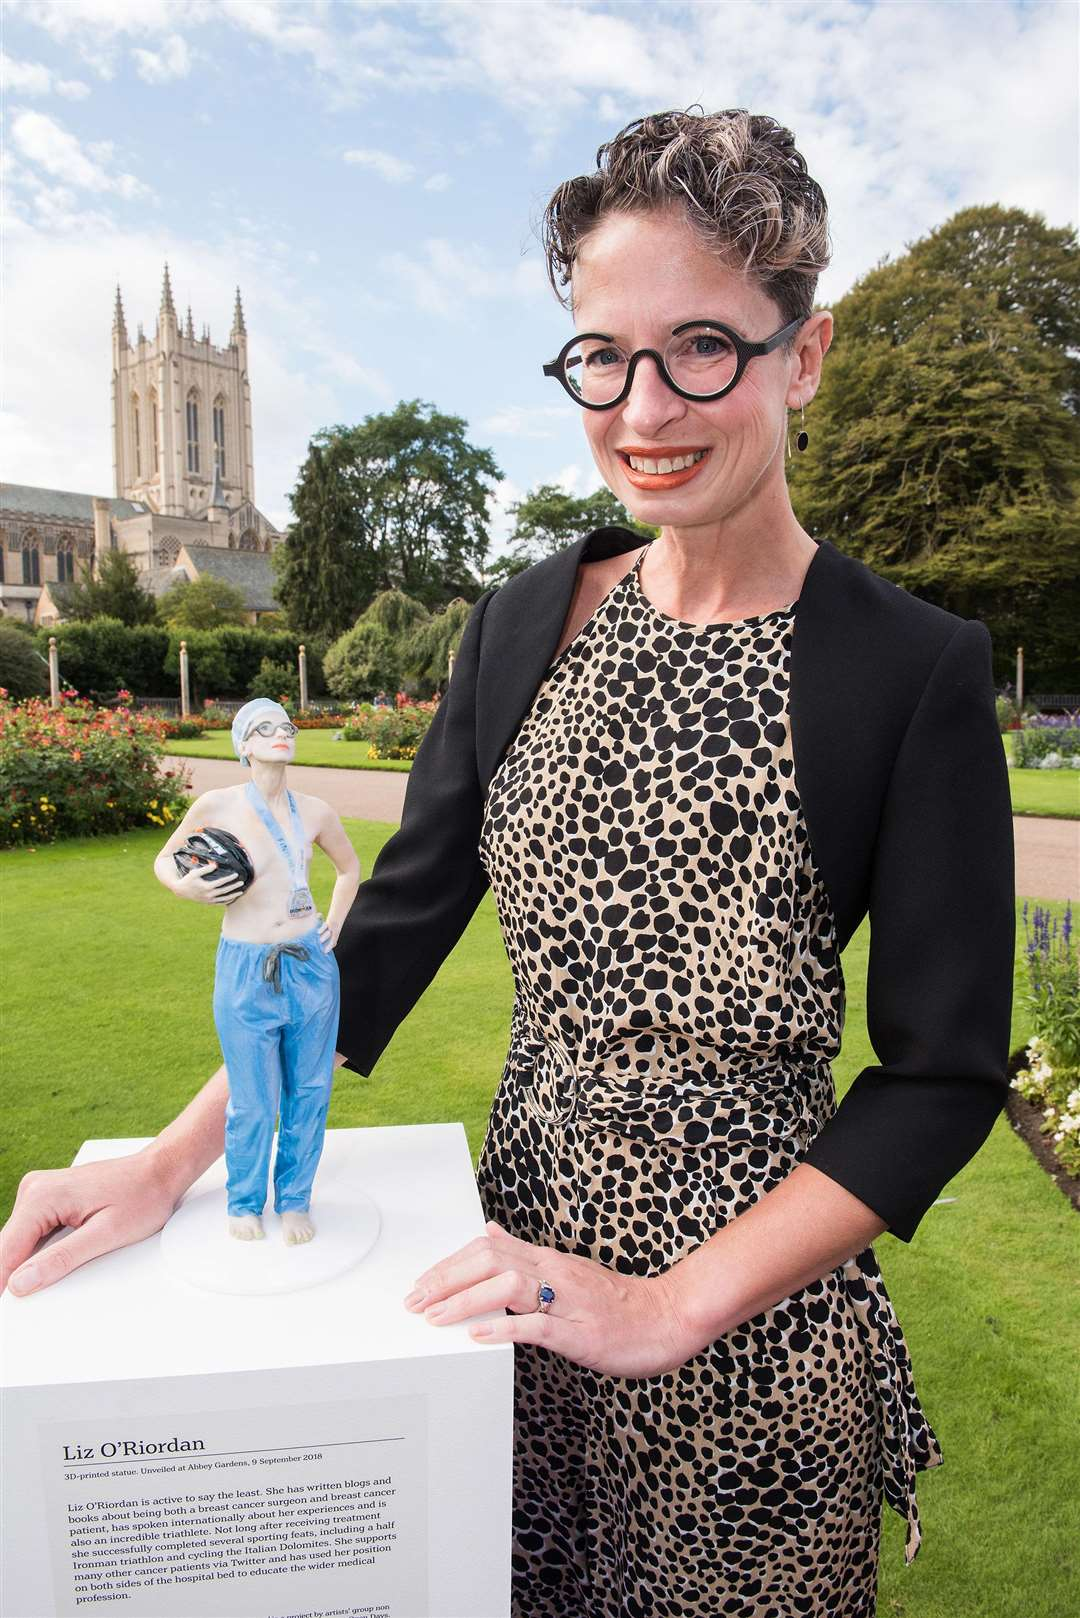 Liz O'Riordan, a breast surgeon who had breast cancer, receives her life-like small statue in the Abbey gardens. Picture: Mark Westley.